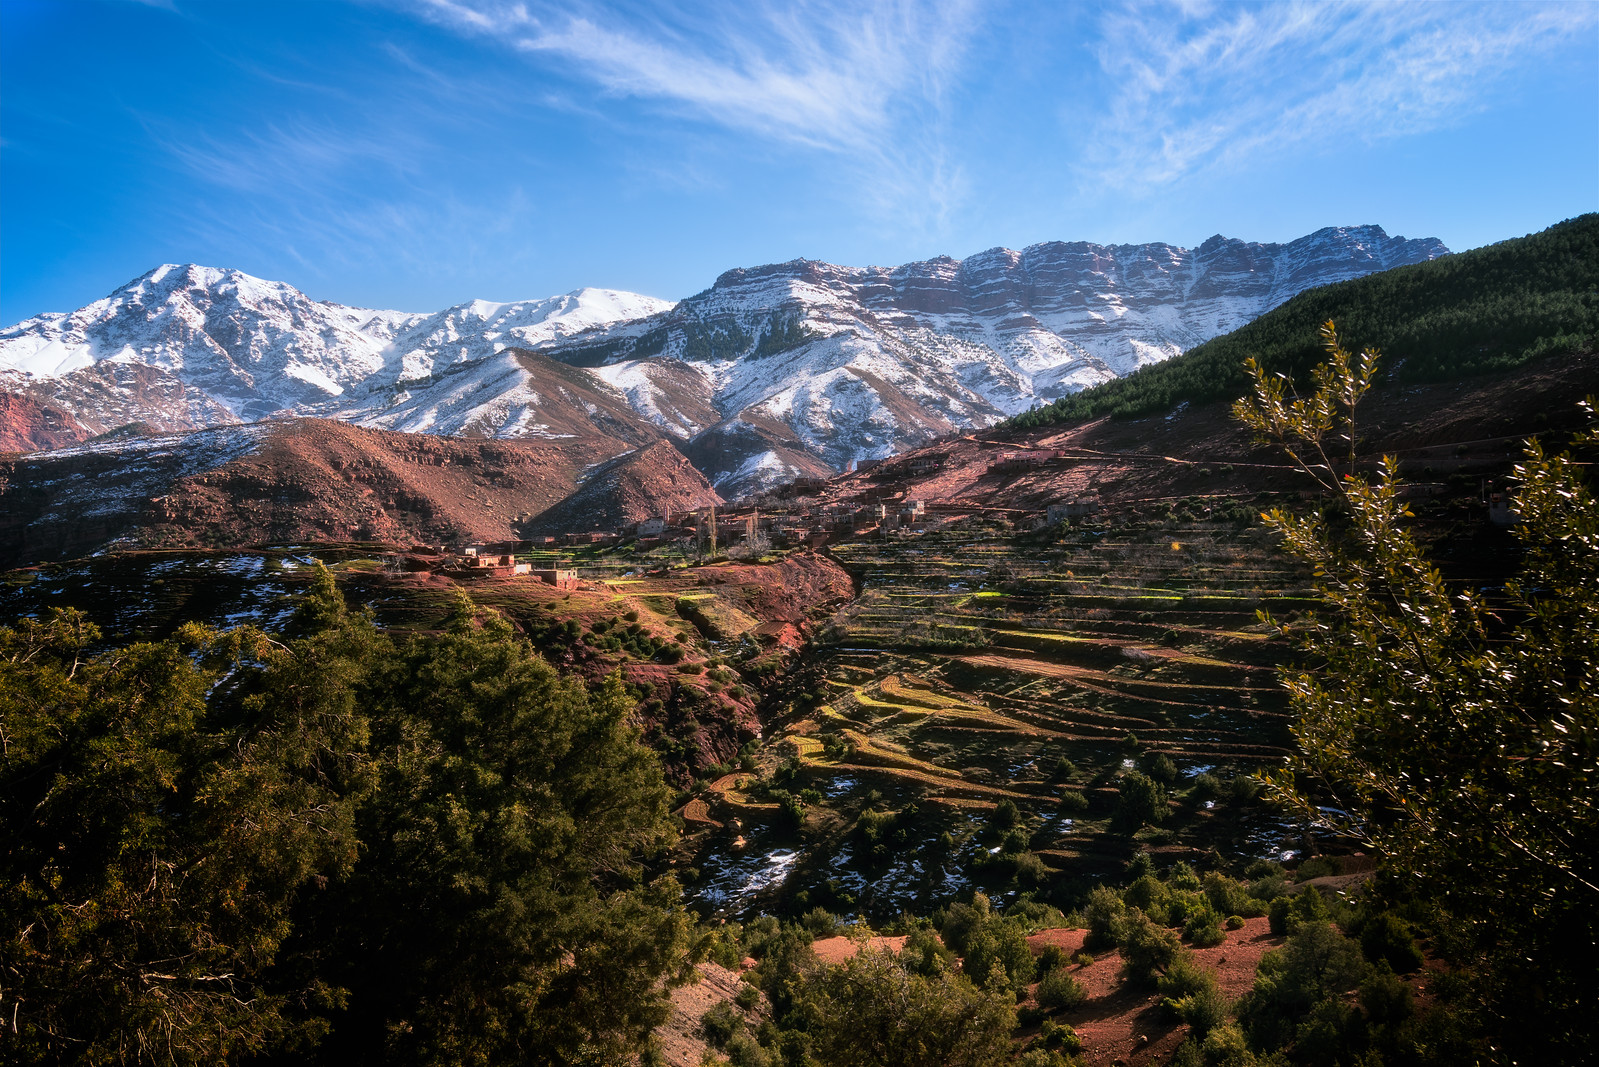 Sidi Fares in the High Atlas Mountains of Morocco - cycling vacation and photography tour with Kevin Wenning